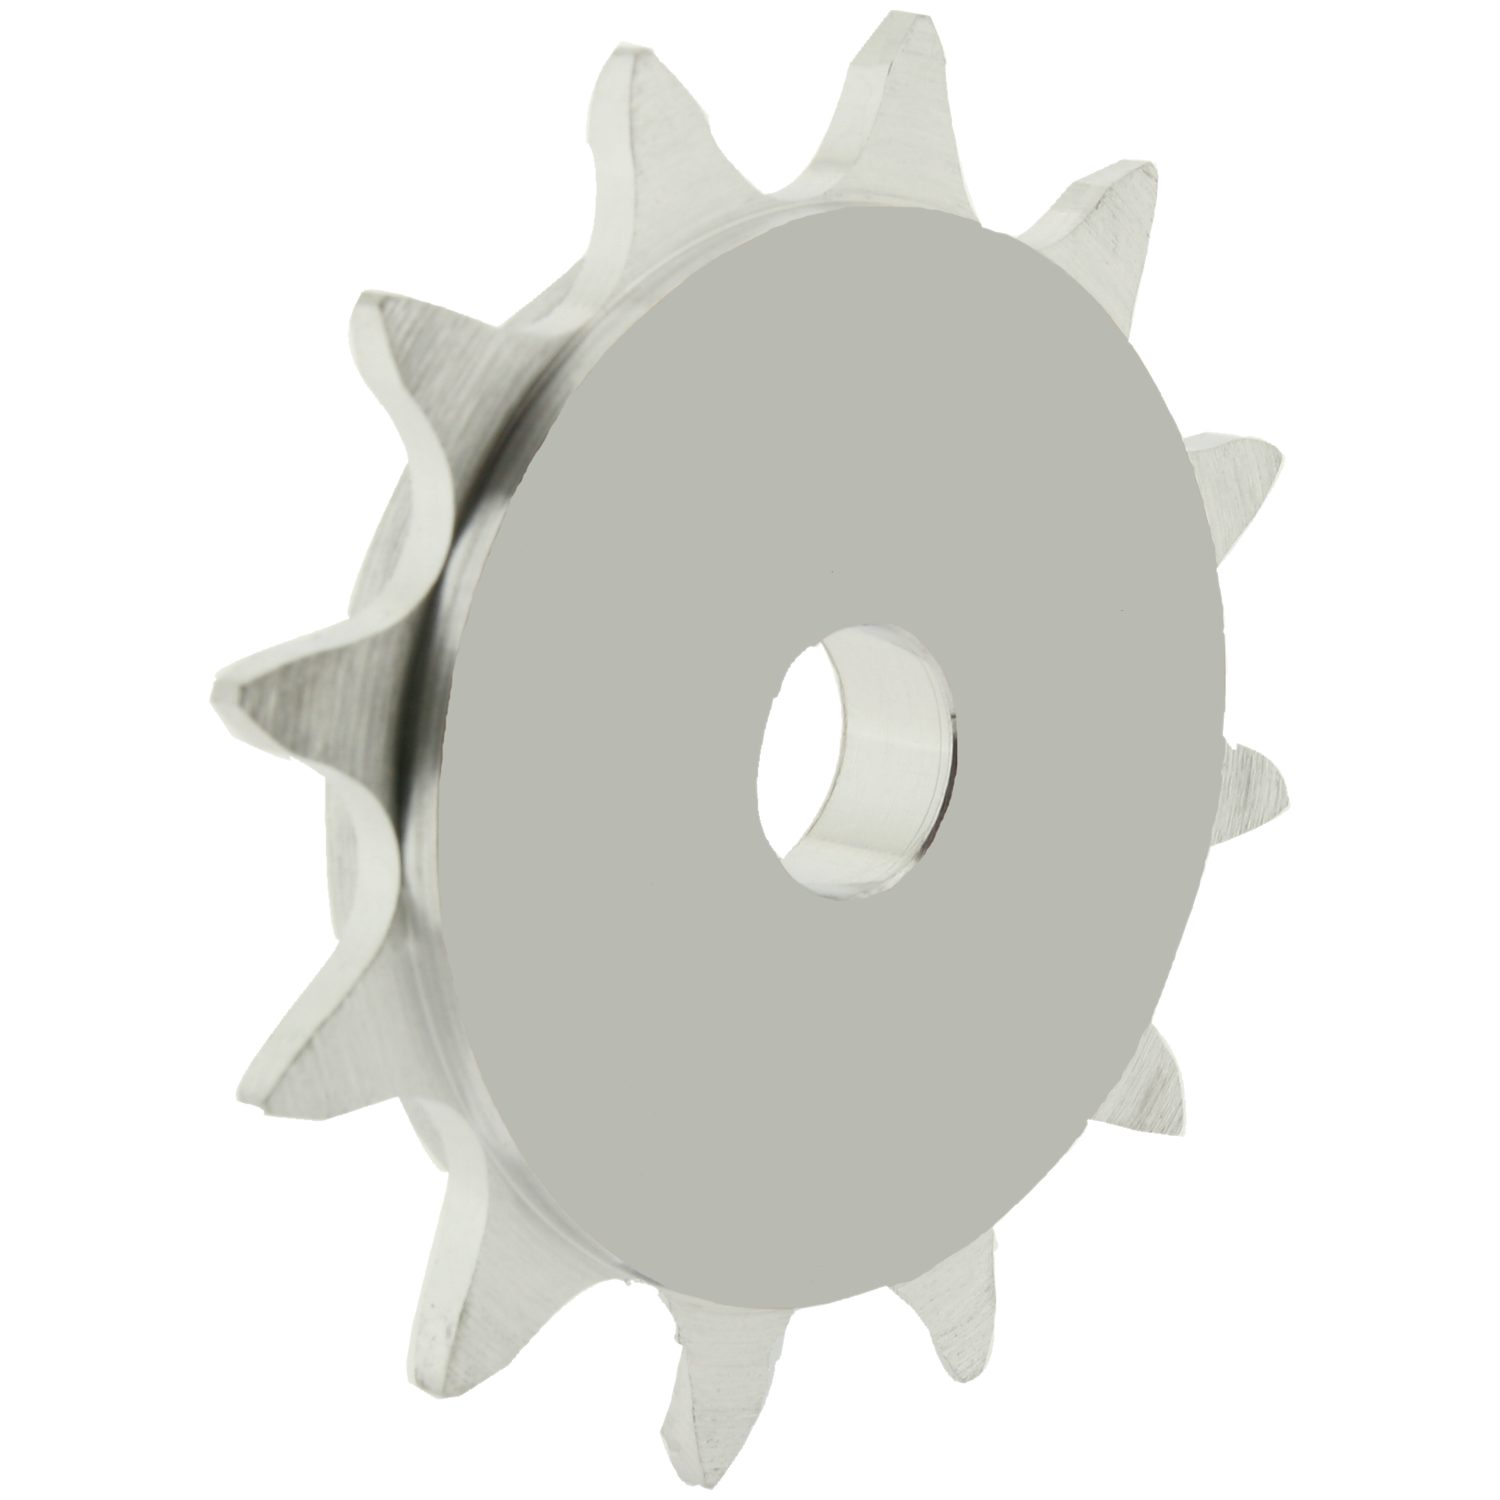 R1360.7 - Sprockets - stainless steel, hubless